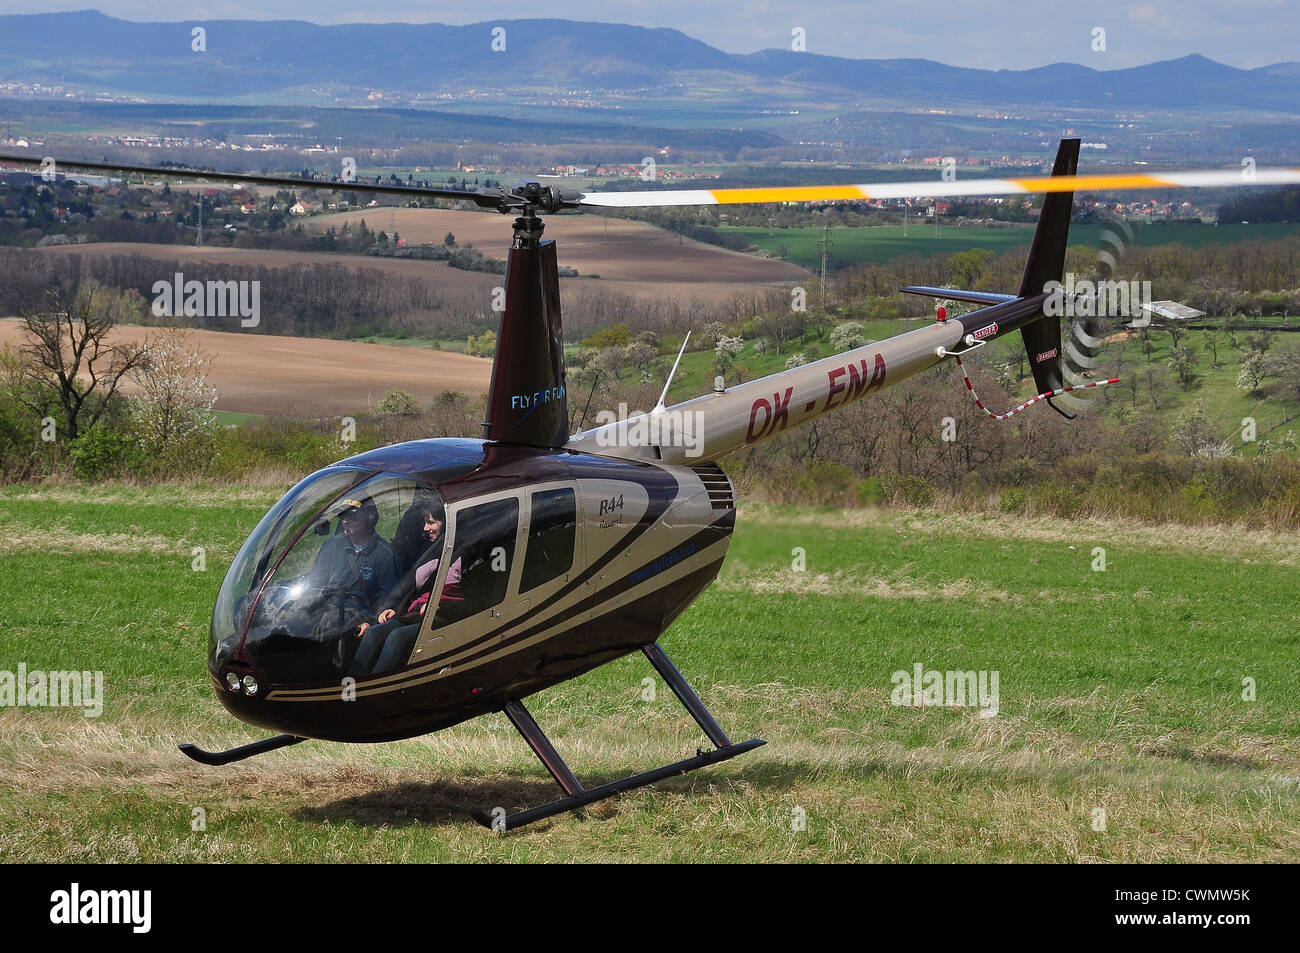 Robinson R44 Helicopter - Stock Image